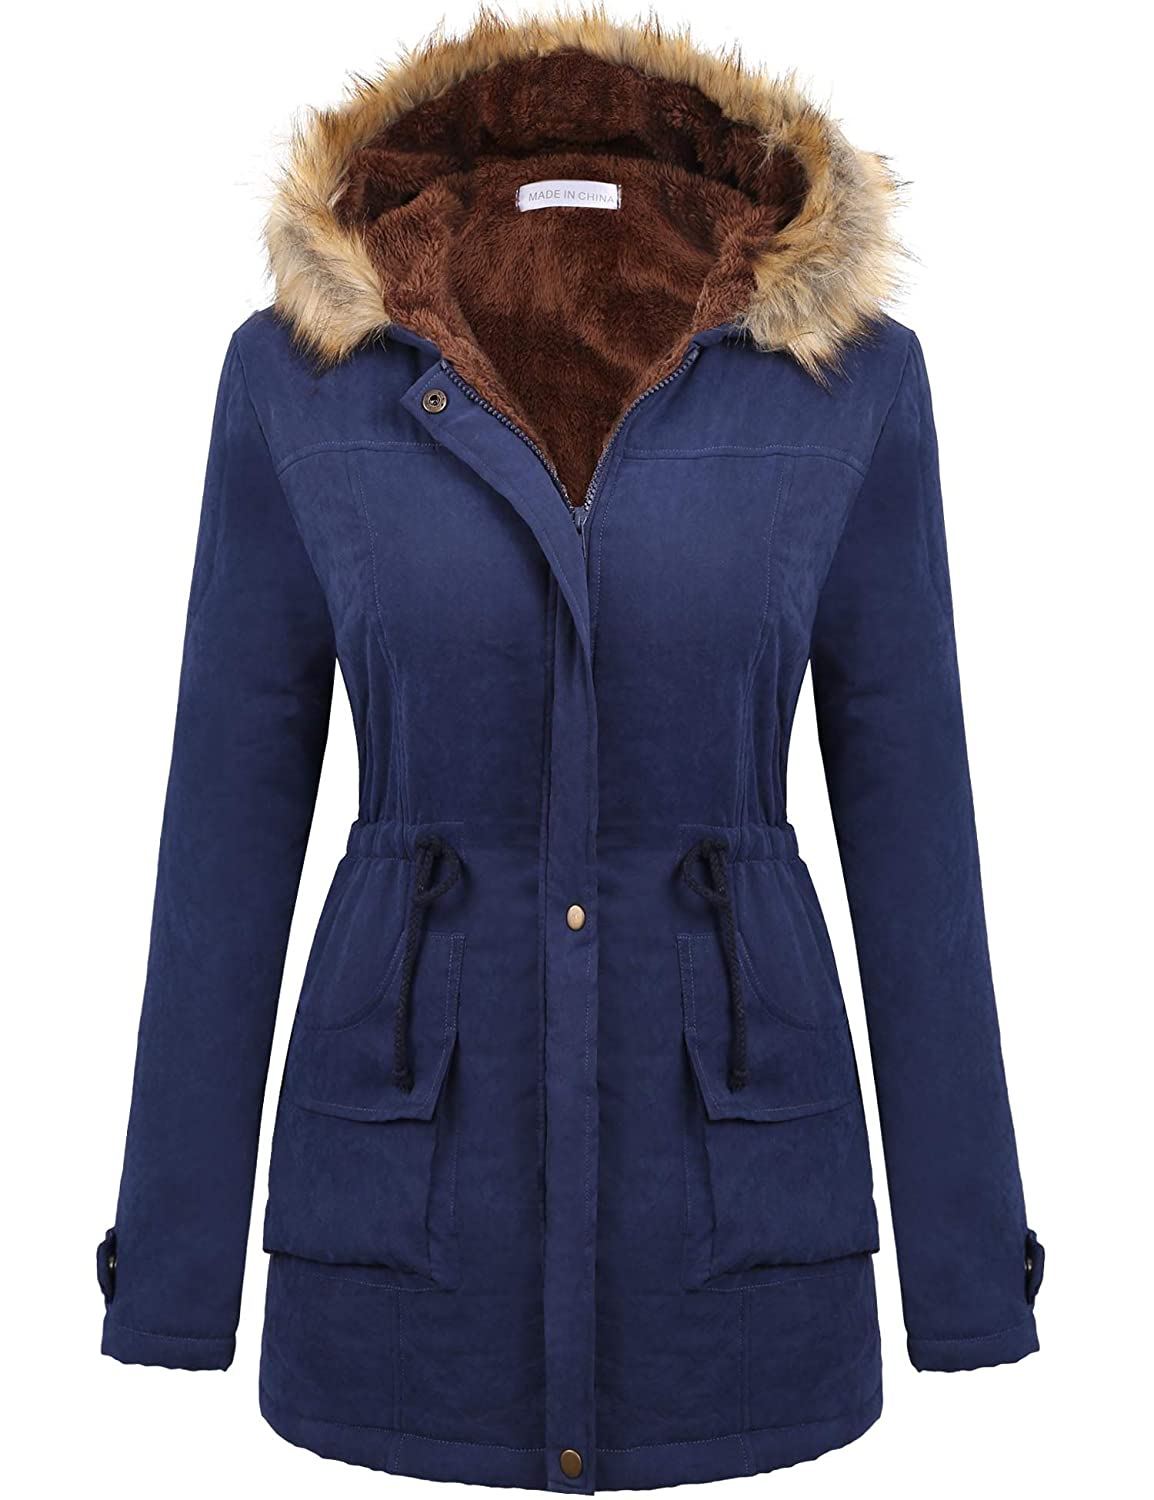 2024navy bluee Macr&Steve Winter Coats for Women, Military Hooded with Faux Fur Trim Winter Jacket ZipUp Front